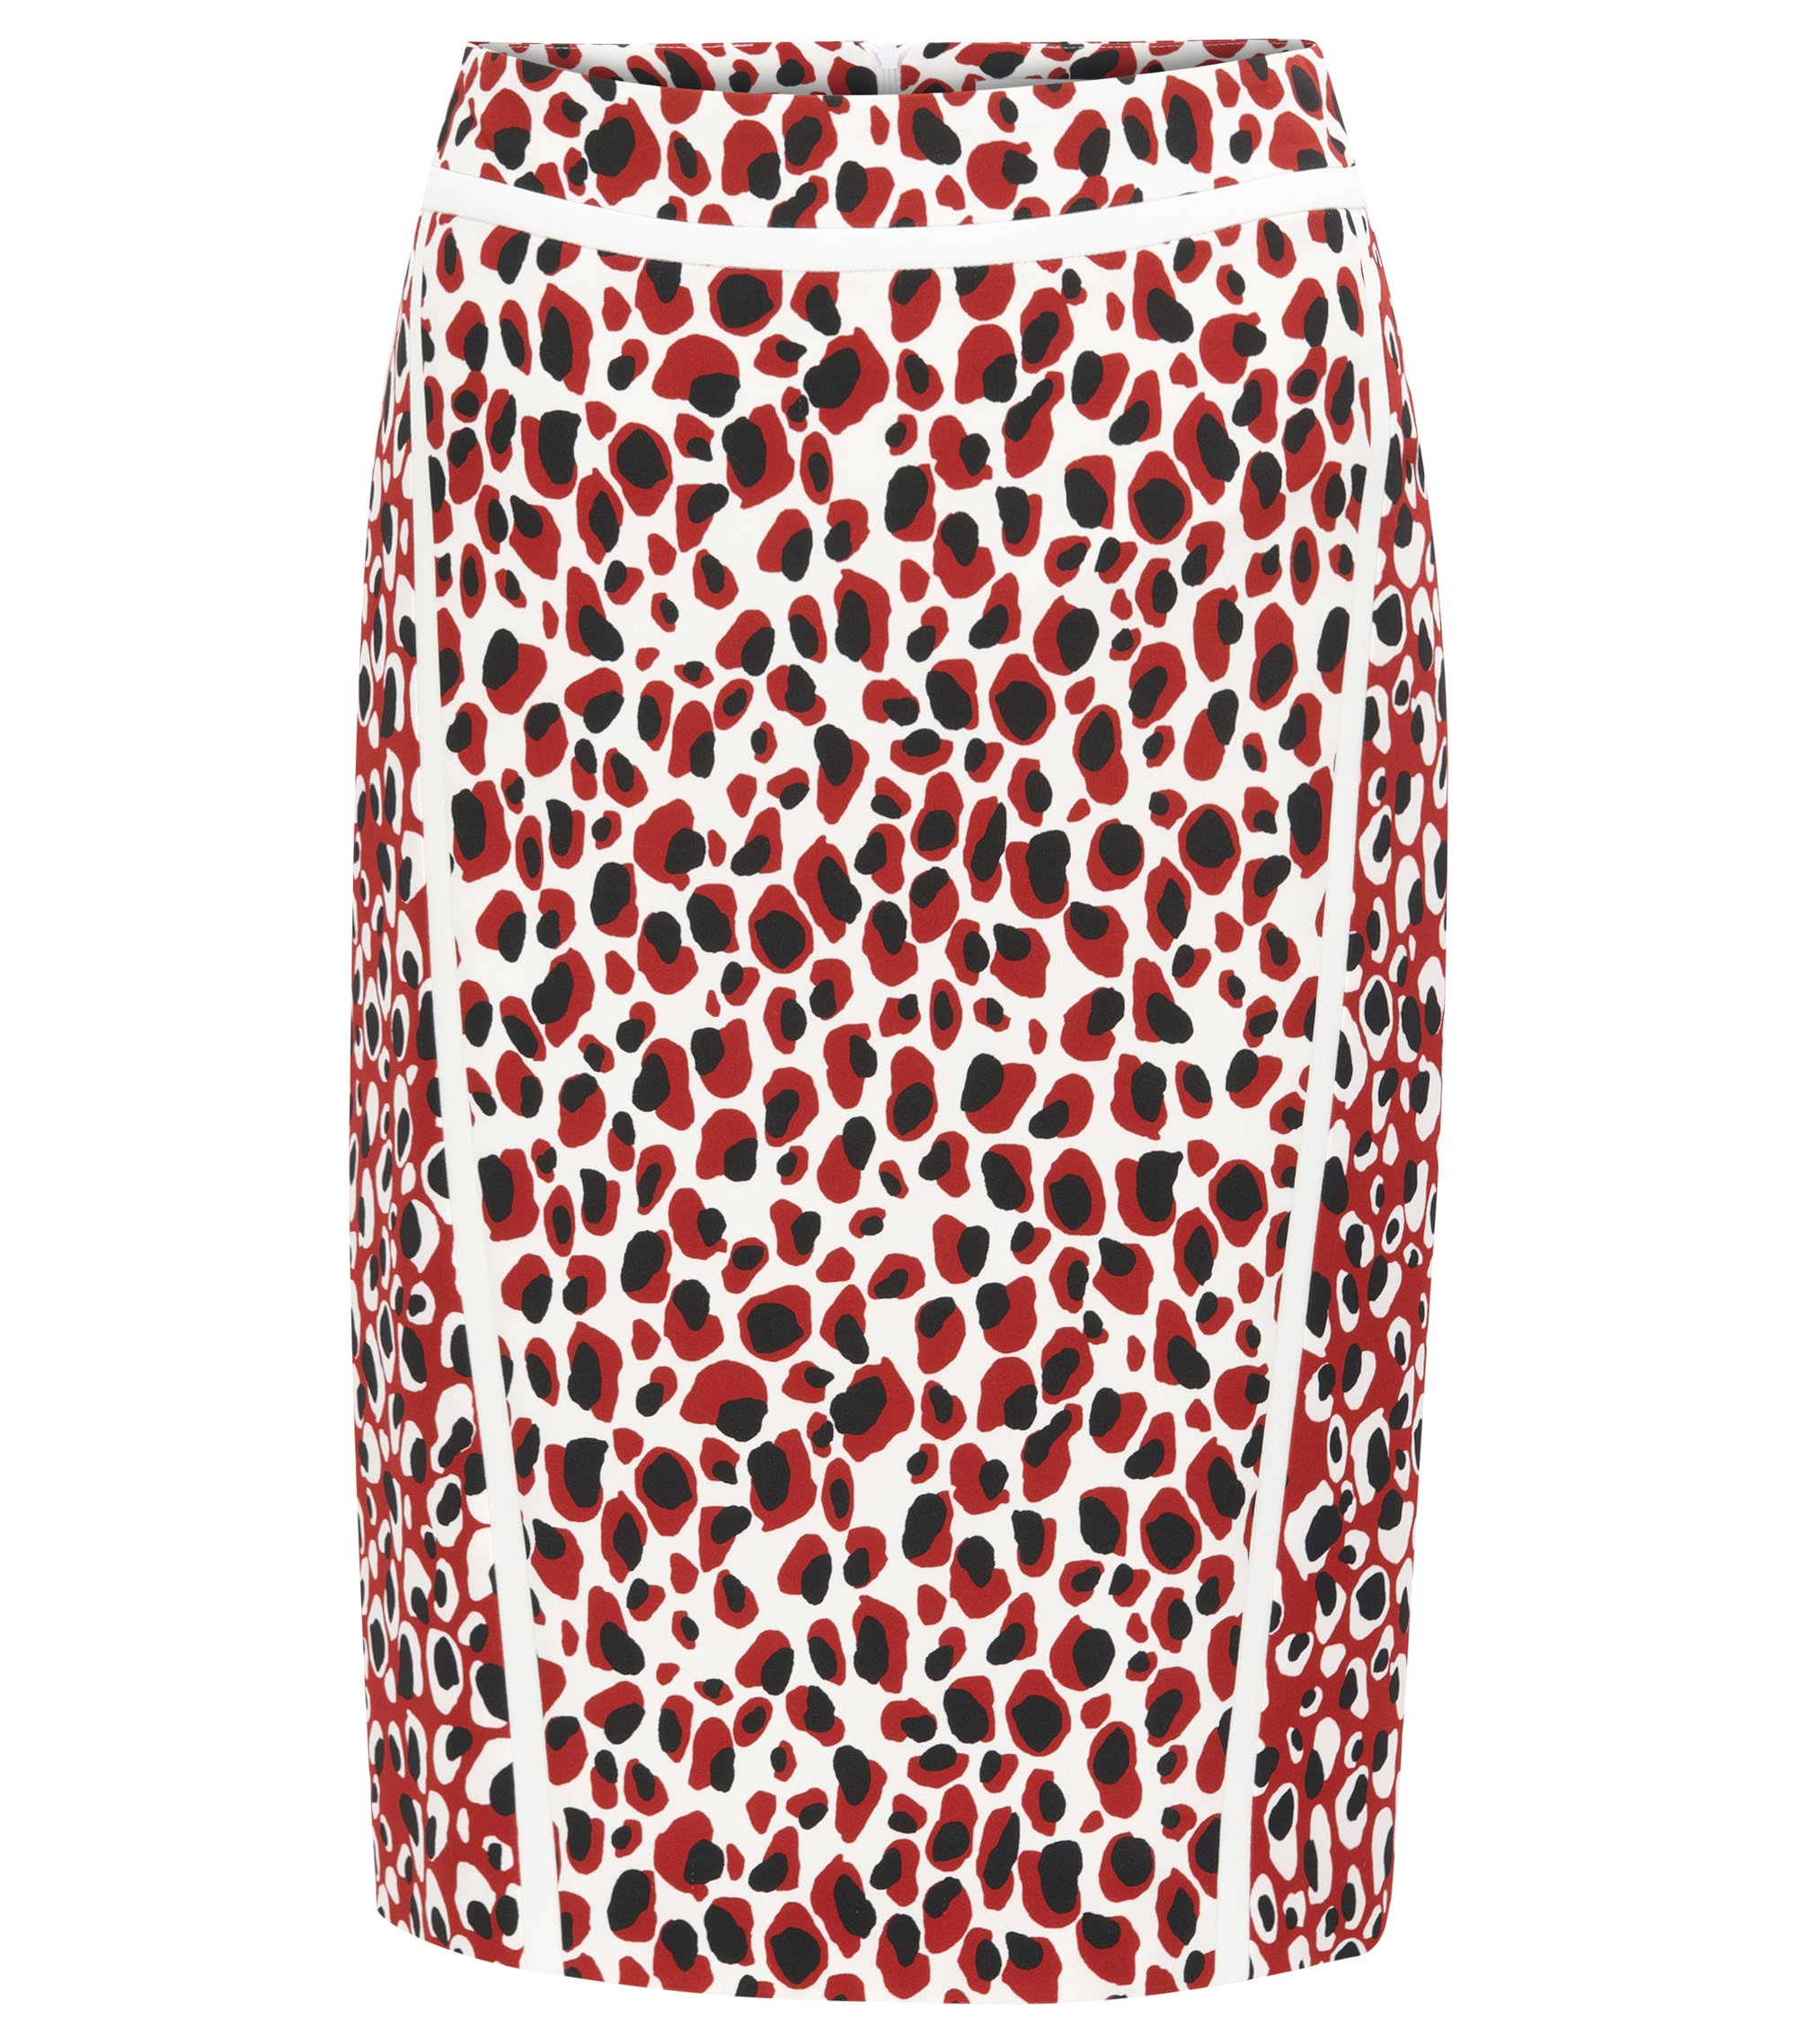 Slim-fit pencil skirt in mixed leopard print, Patterned